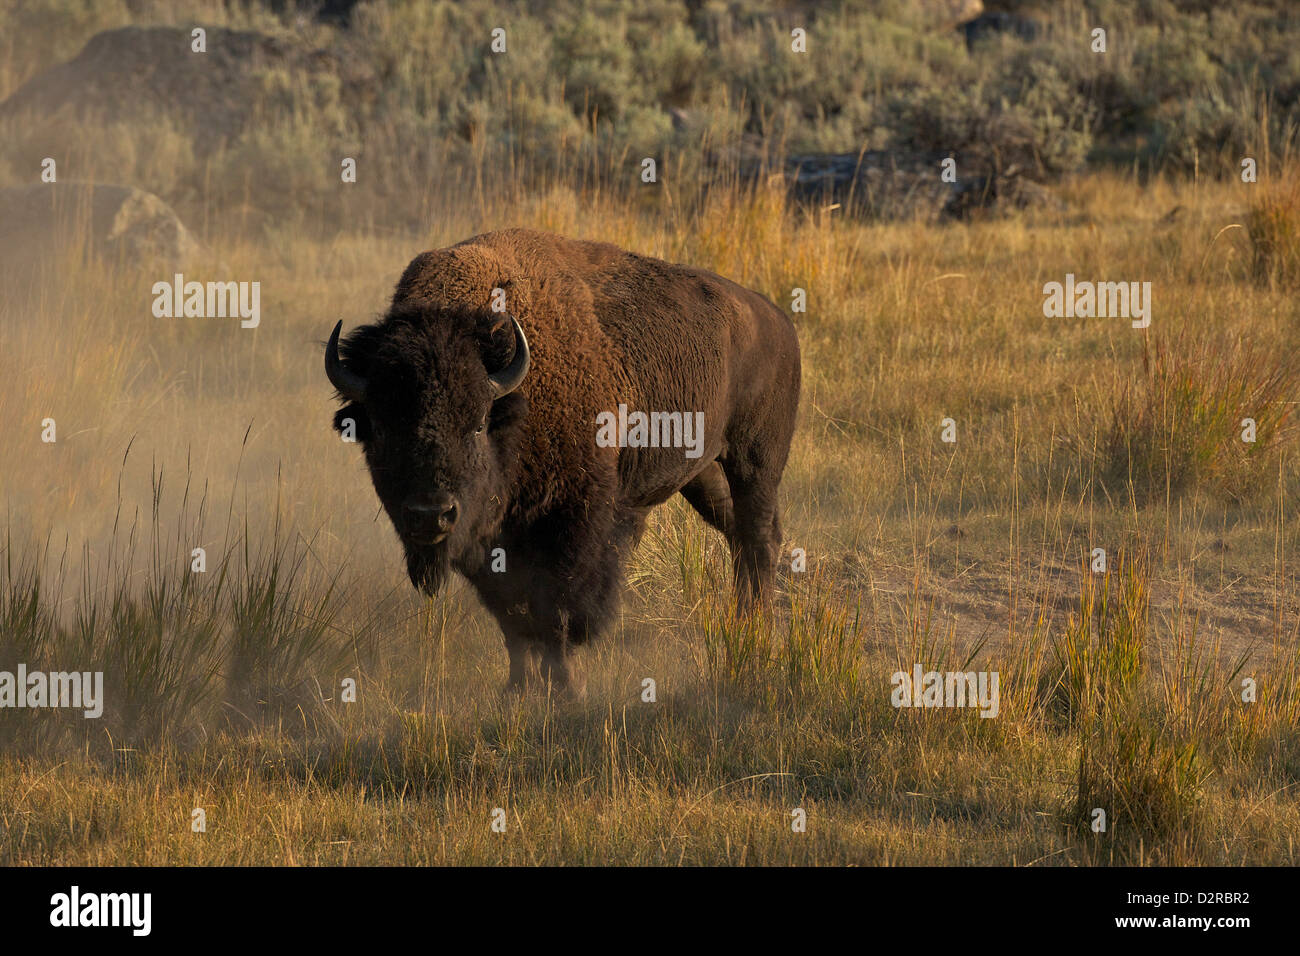 Bison in the Lamar Valley, Yellowstone National Park, Wyoming, USA - Stock Image